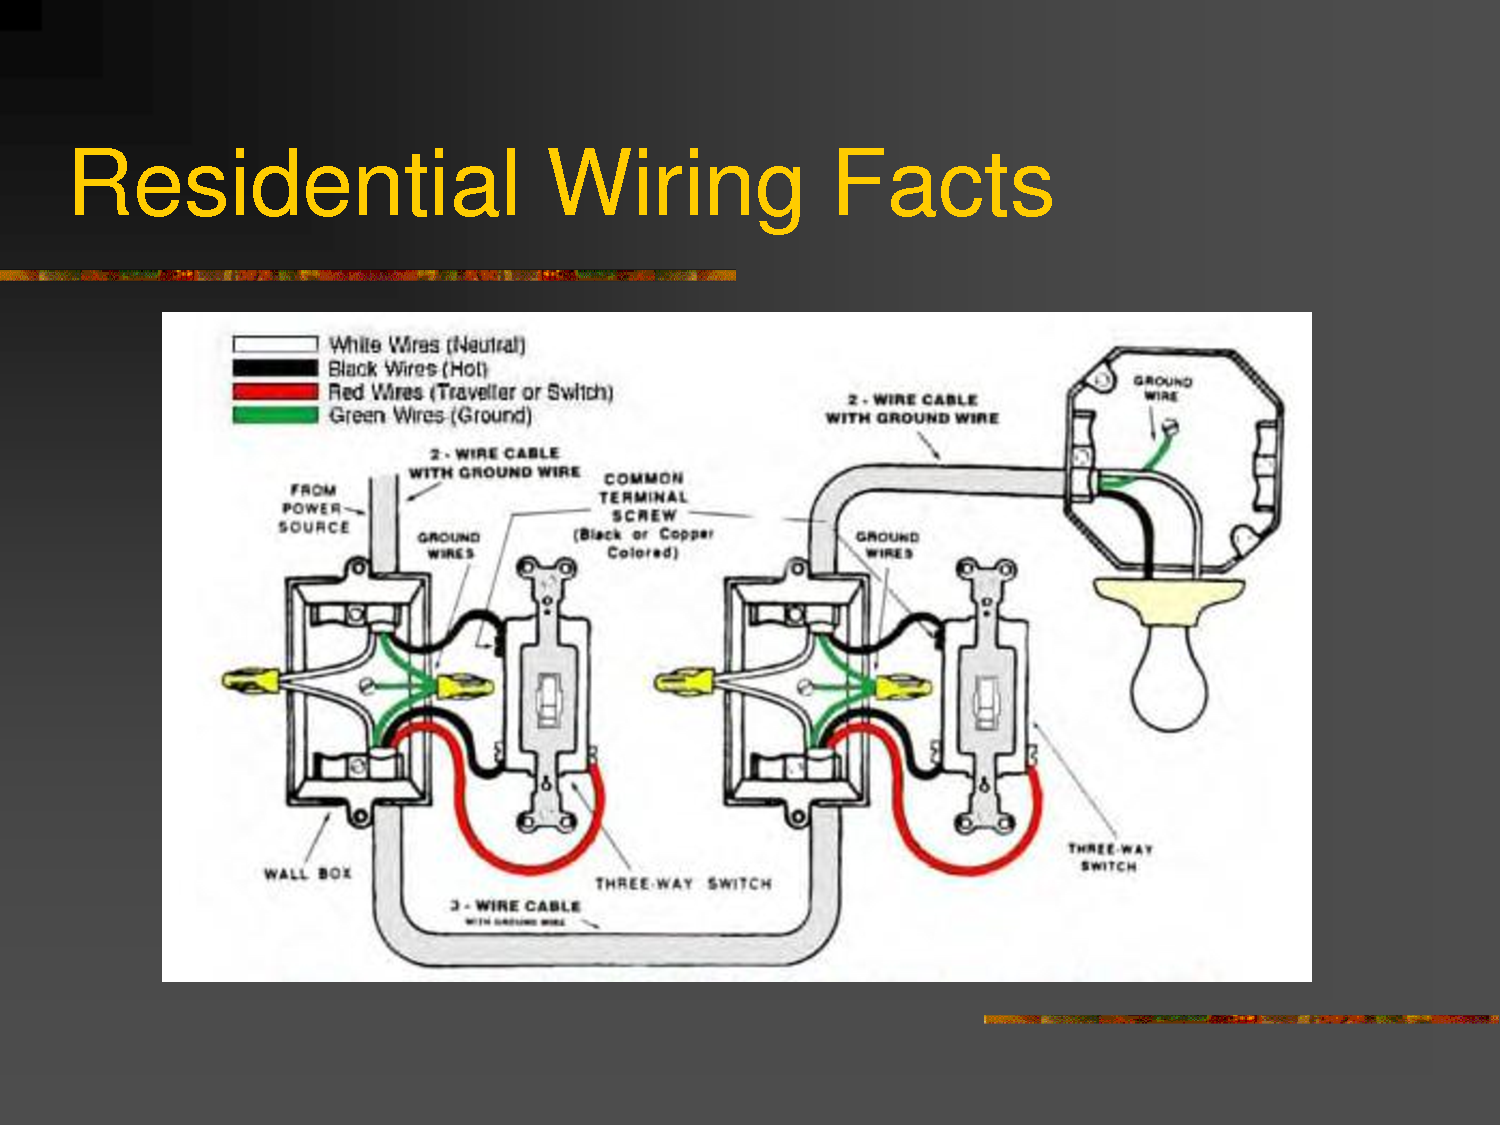 85f6d7068dddf27aa5737fc68962f04e 4 best images of residential wiring diagrams house electrical home electrical wiring diagrams at virtualis.co